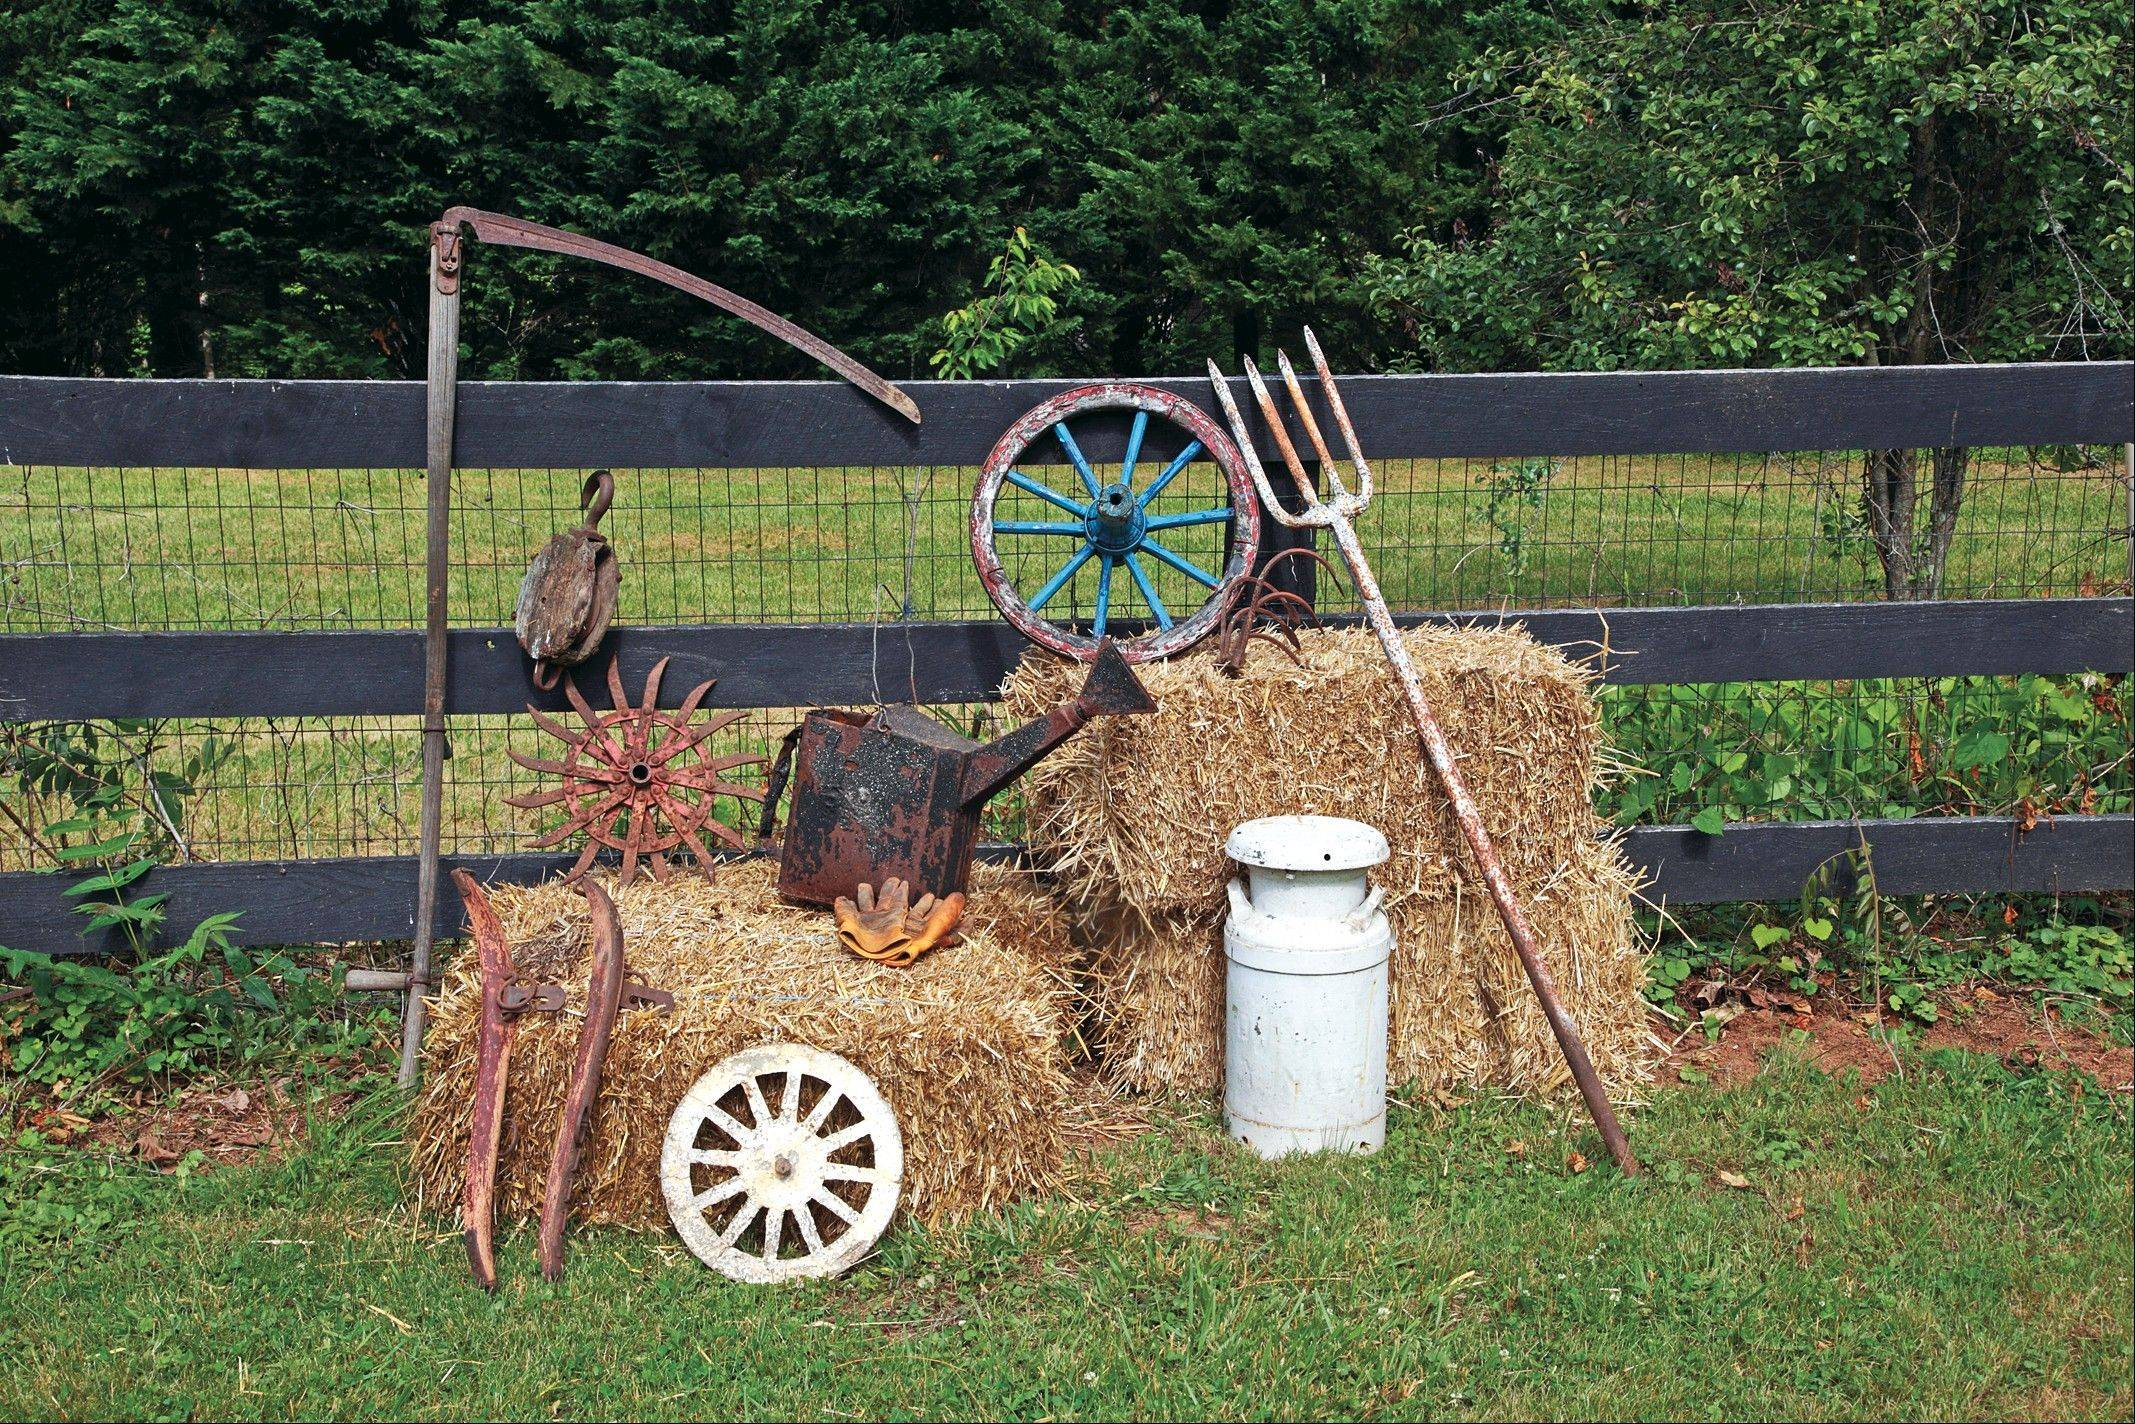 Collectors of country items have always had a fondness for vintage and antique farm tools.